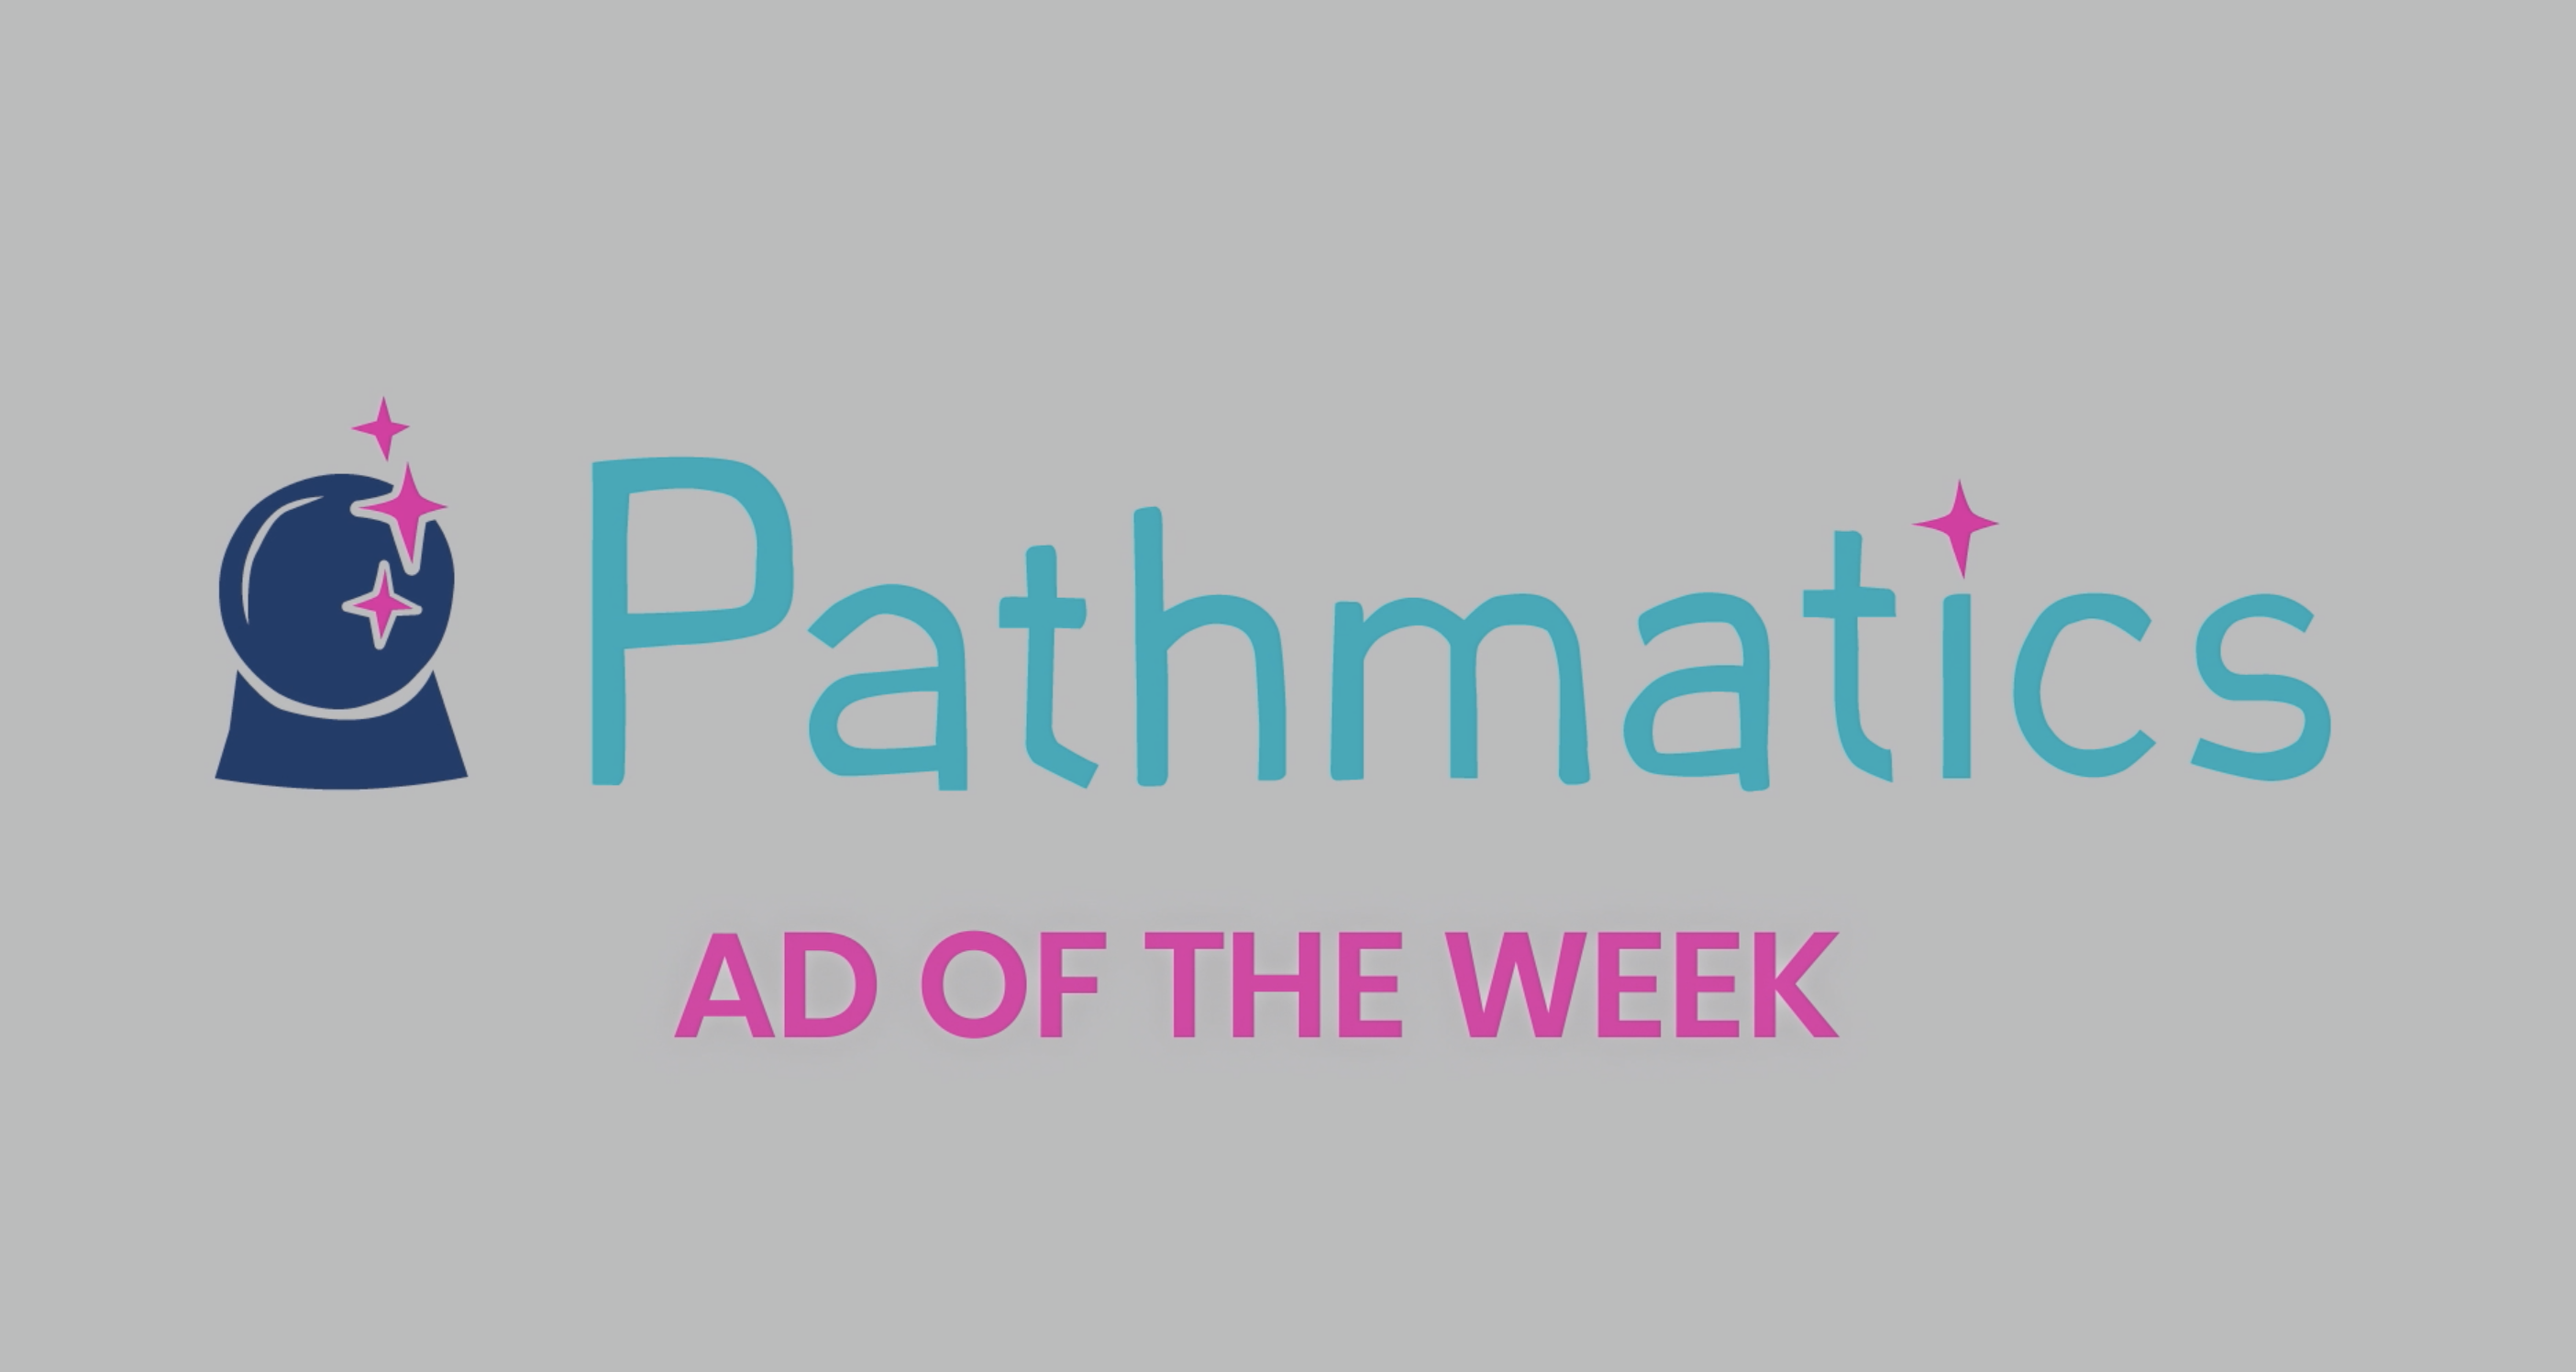 Pathmatics Ad of the Week, Episode 1 - TD Bank Group